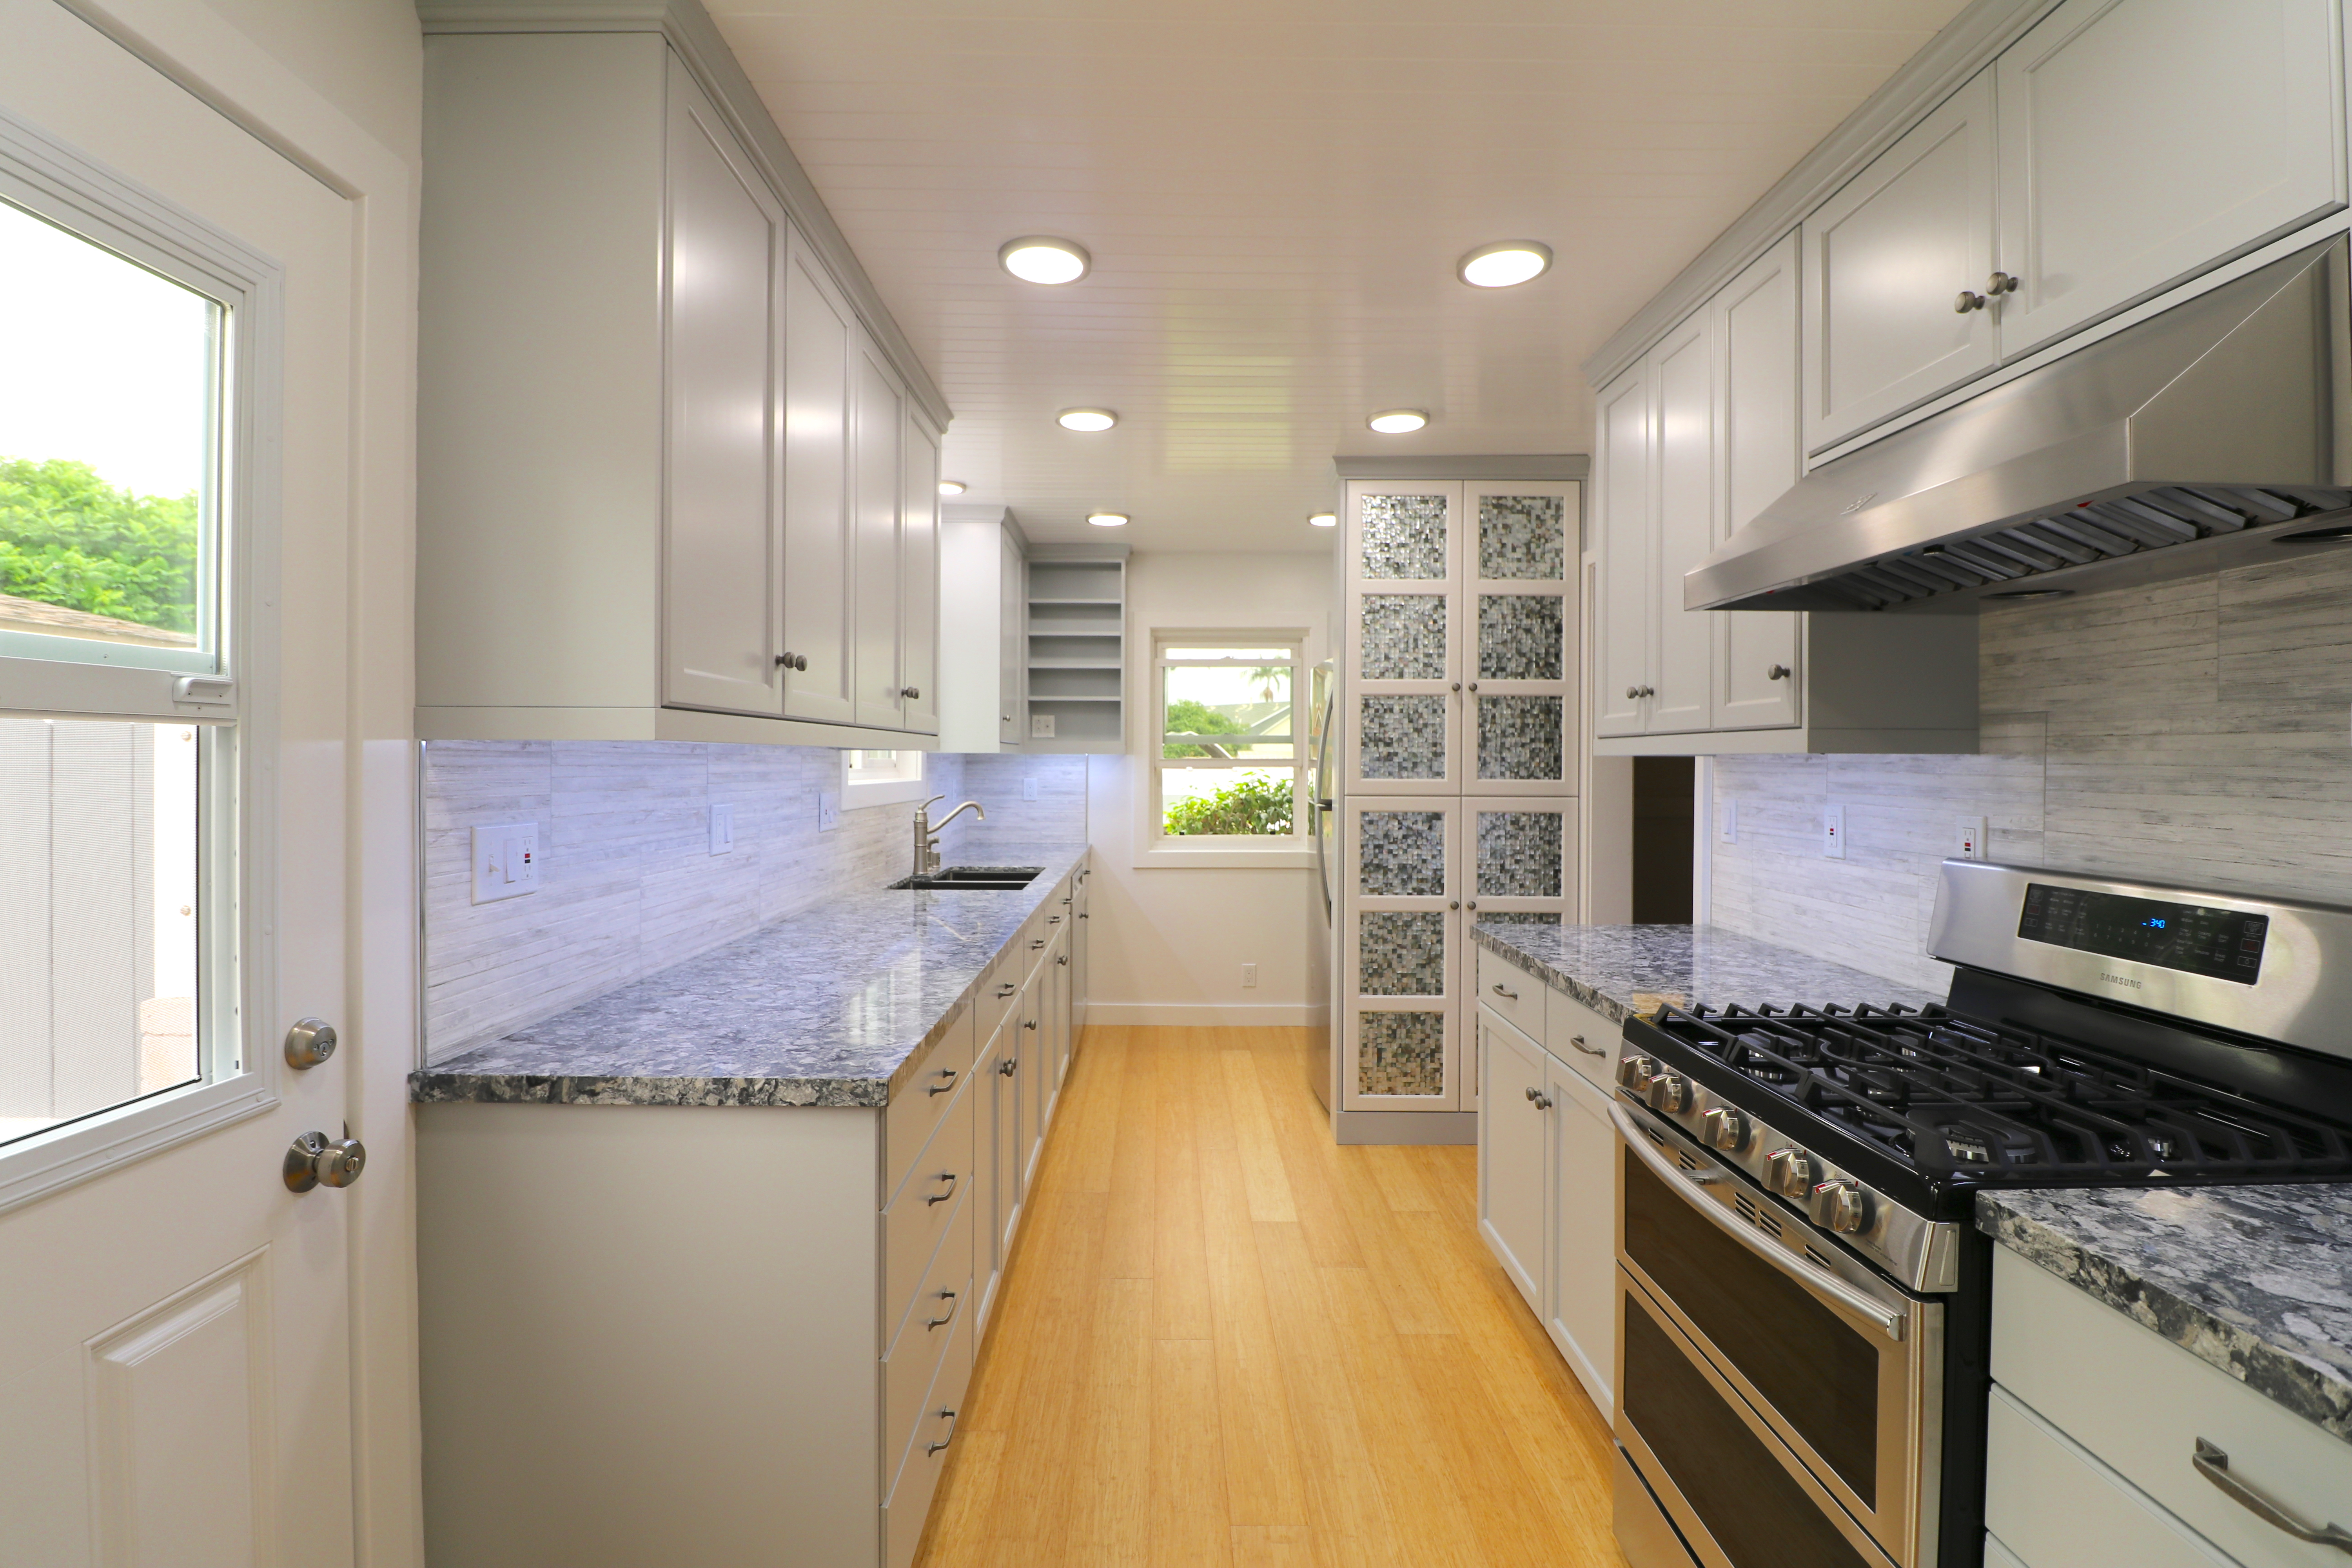 Torrance Kitchen Remodel - Contractor - New Galley